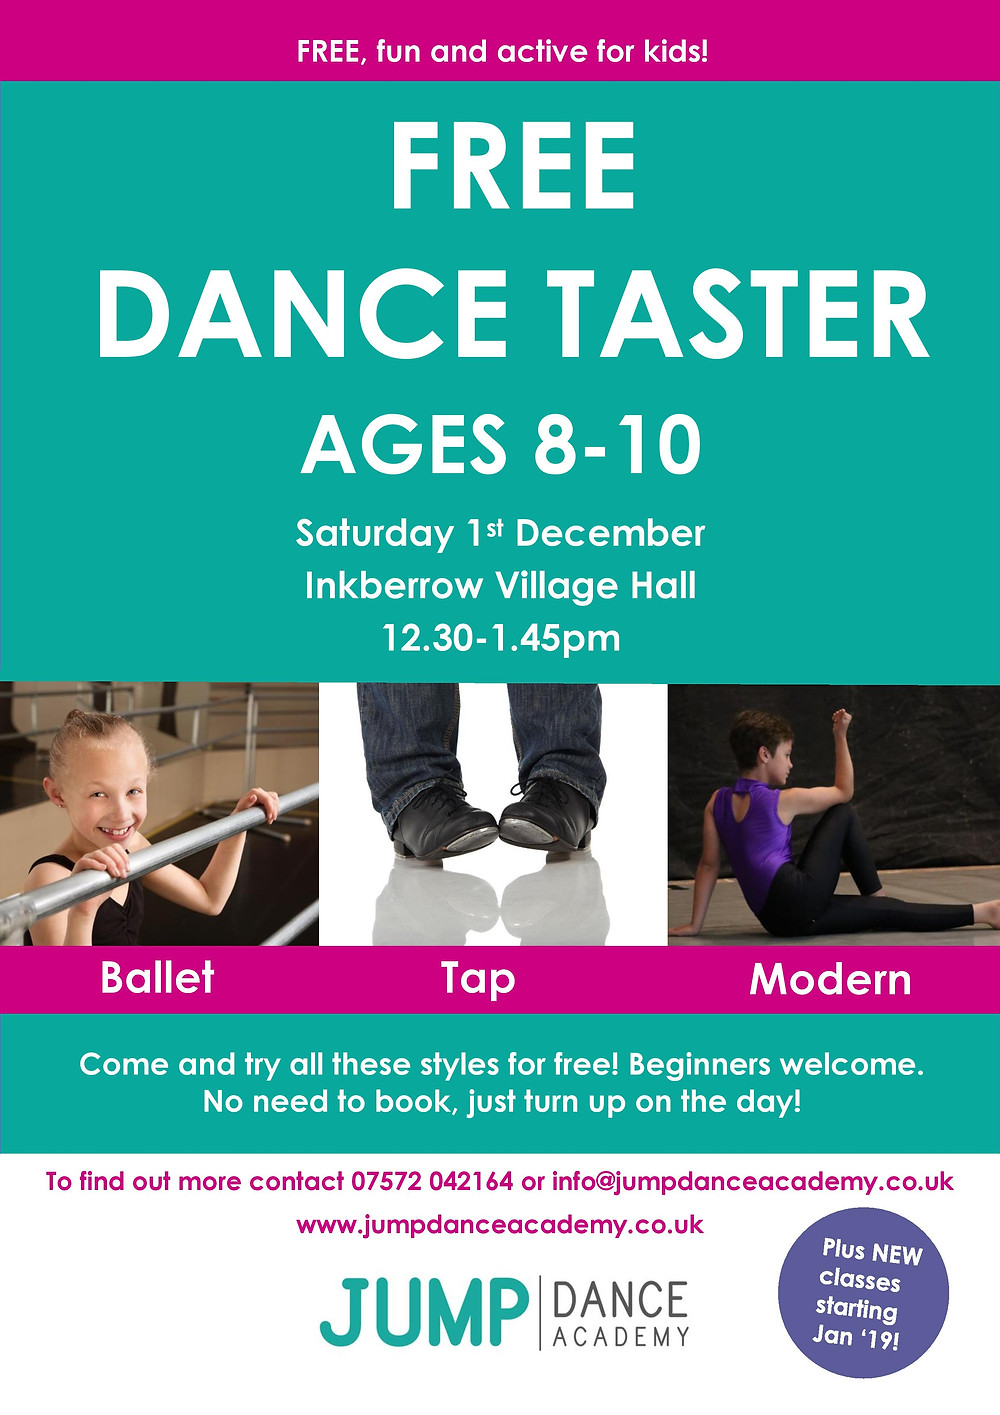 Free dance taster day